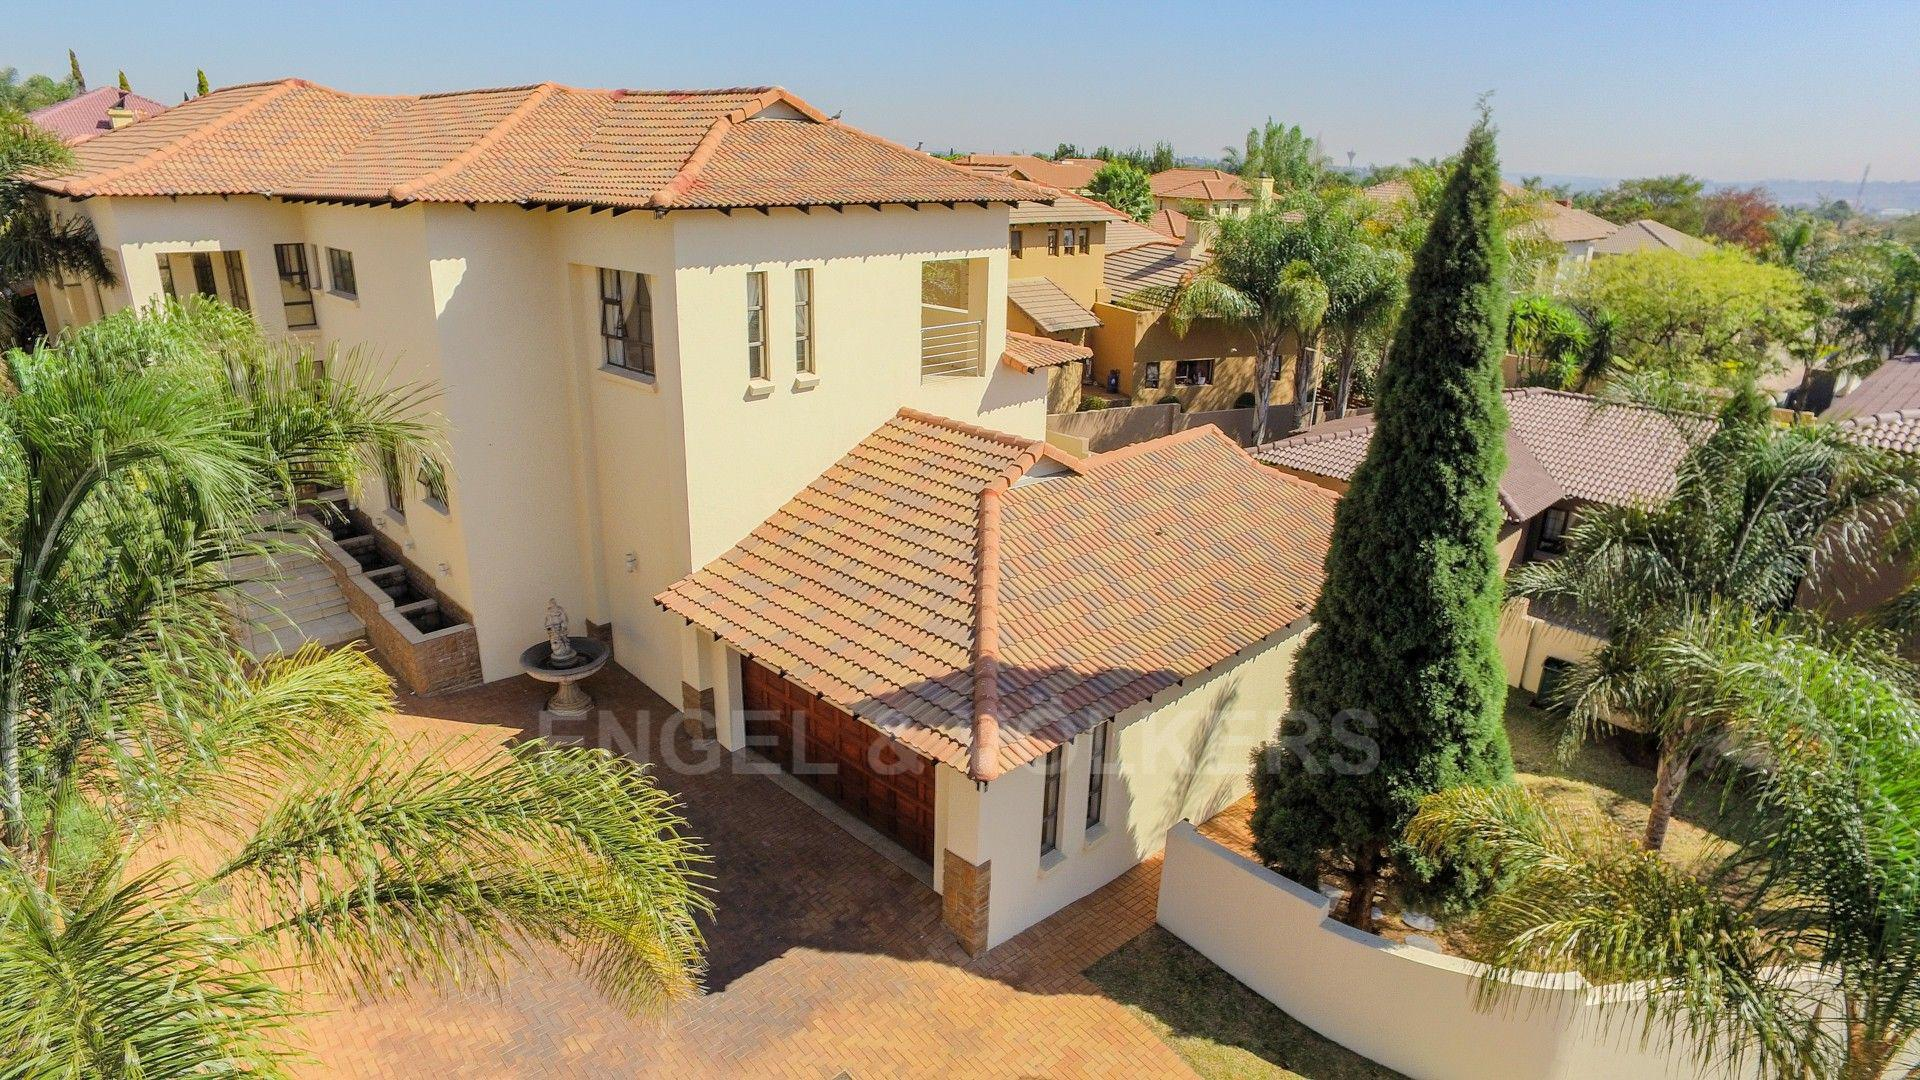 Property and Houses for sale in Irene View Estate, House, 4 Bedrooms - ZAR 4,000,000